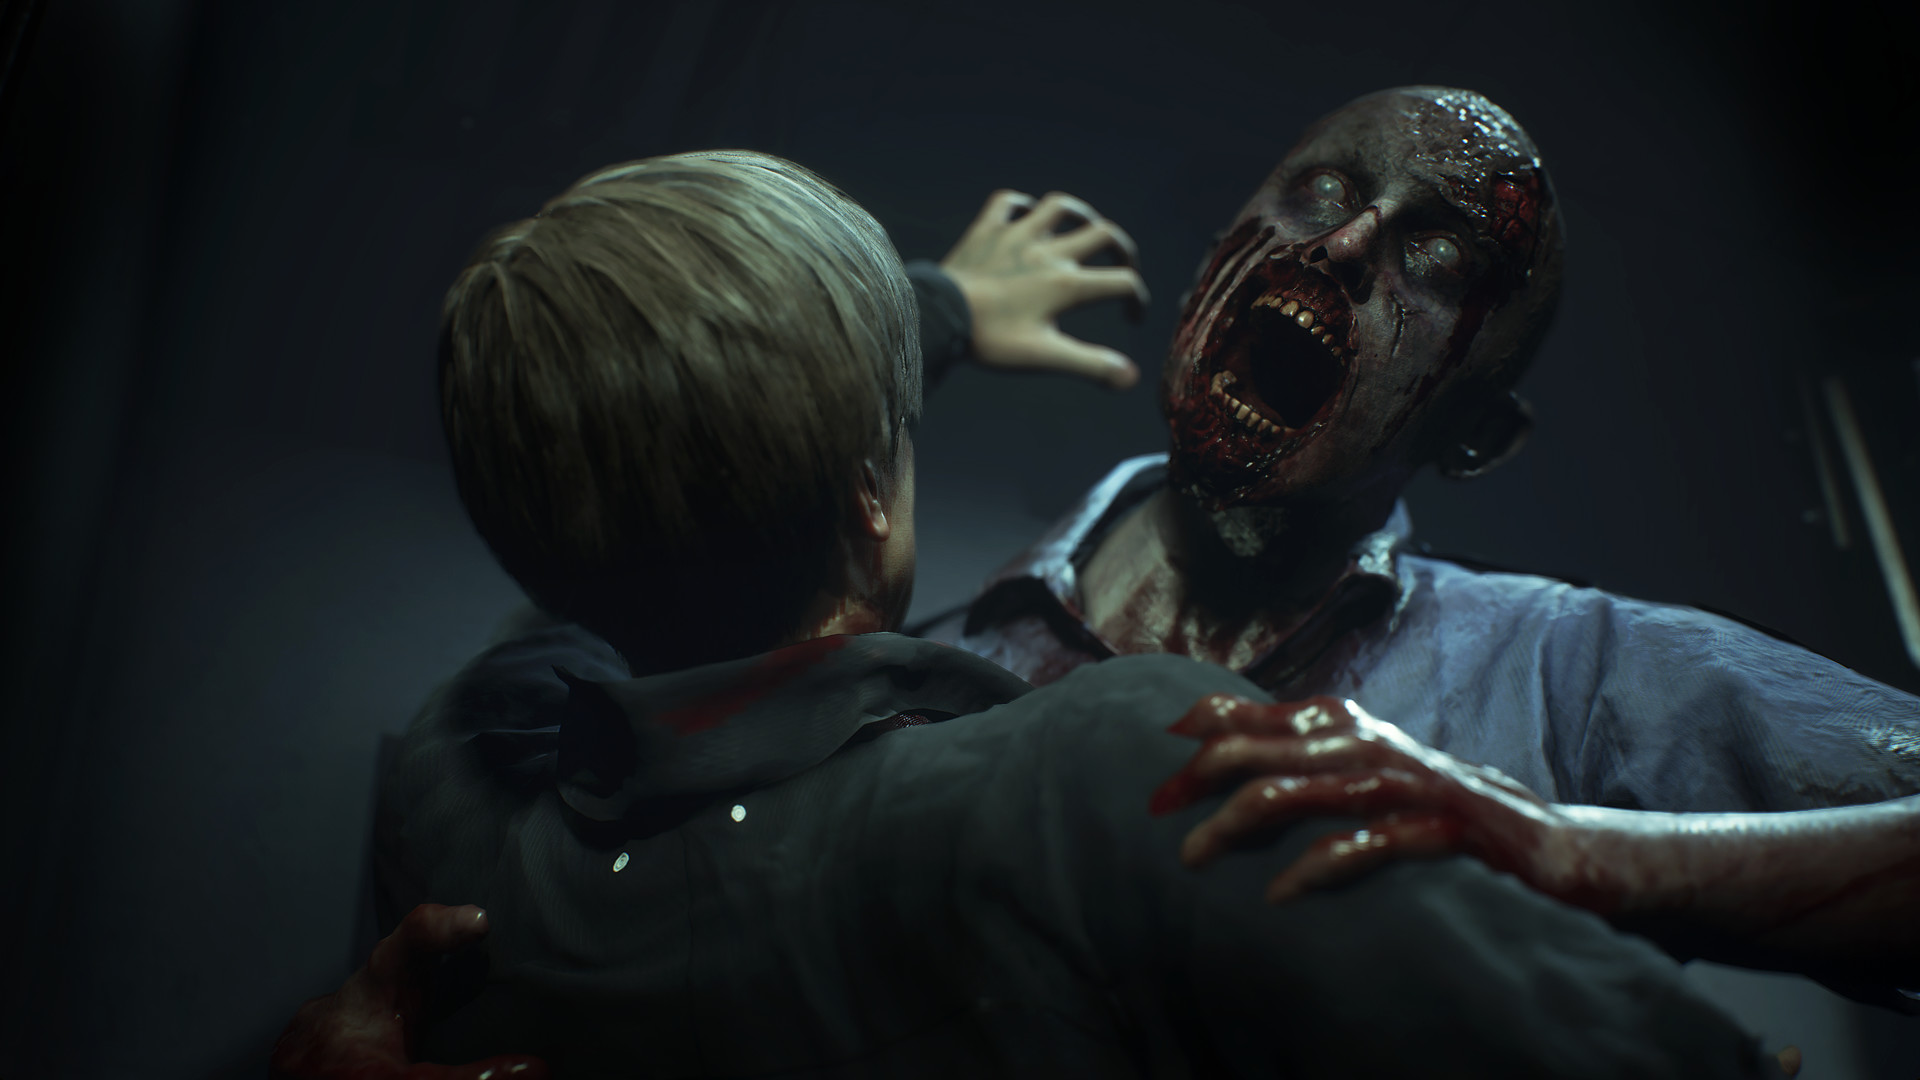 👻 RESIDENT EVIL 2 / BIOHAZARD RE 2 (STEAM) - License